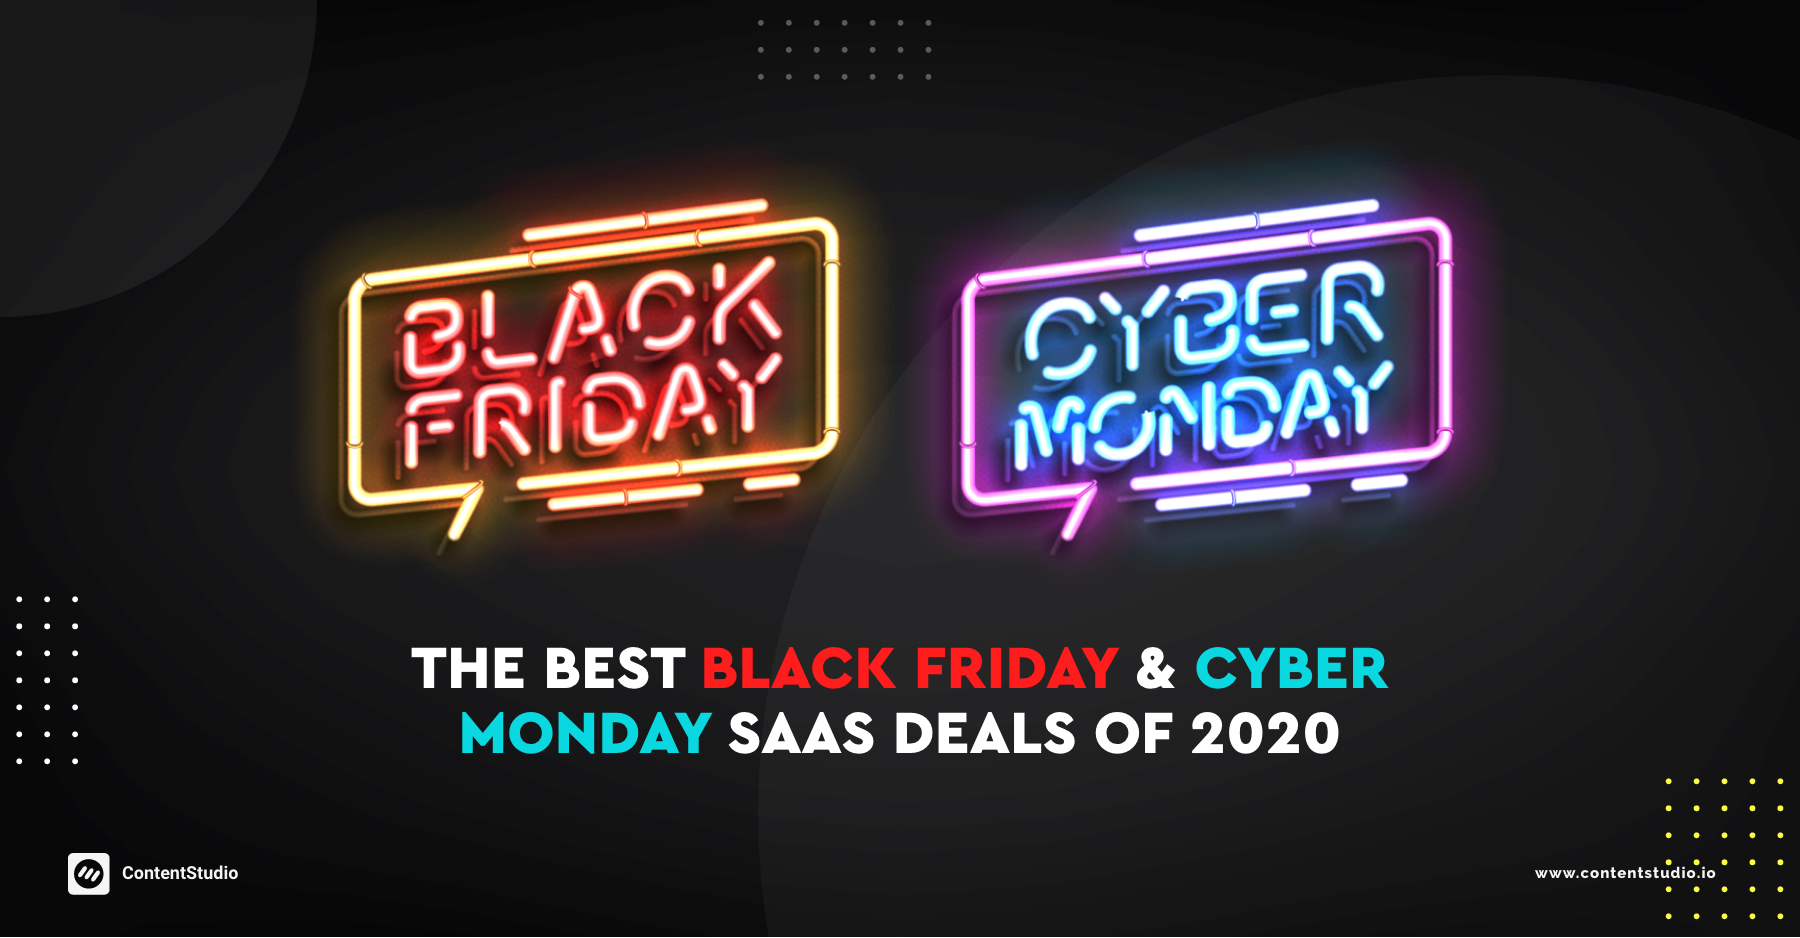 The Best Black Friday & Cyber Monday SaaS Deals of 2020